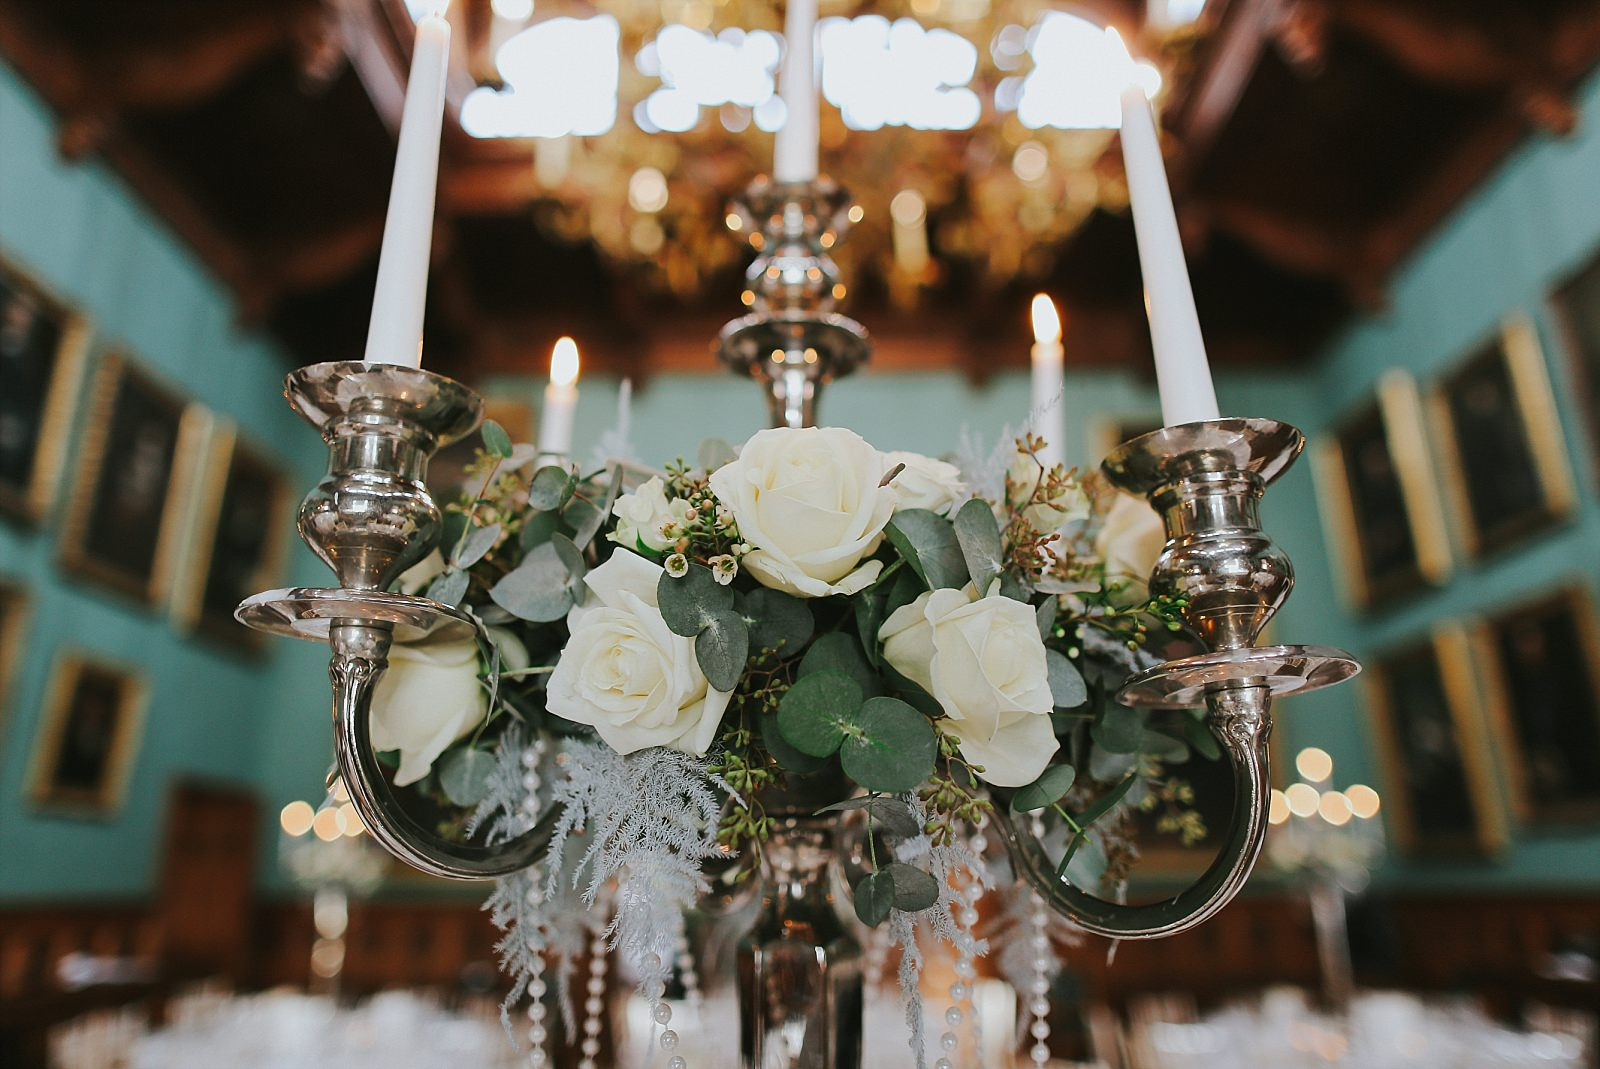 Whte roses arranged on a candelabra top in a large room